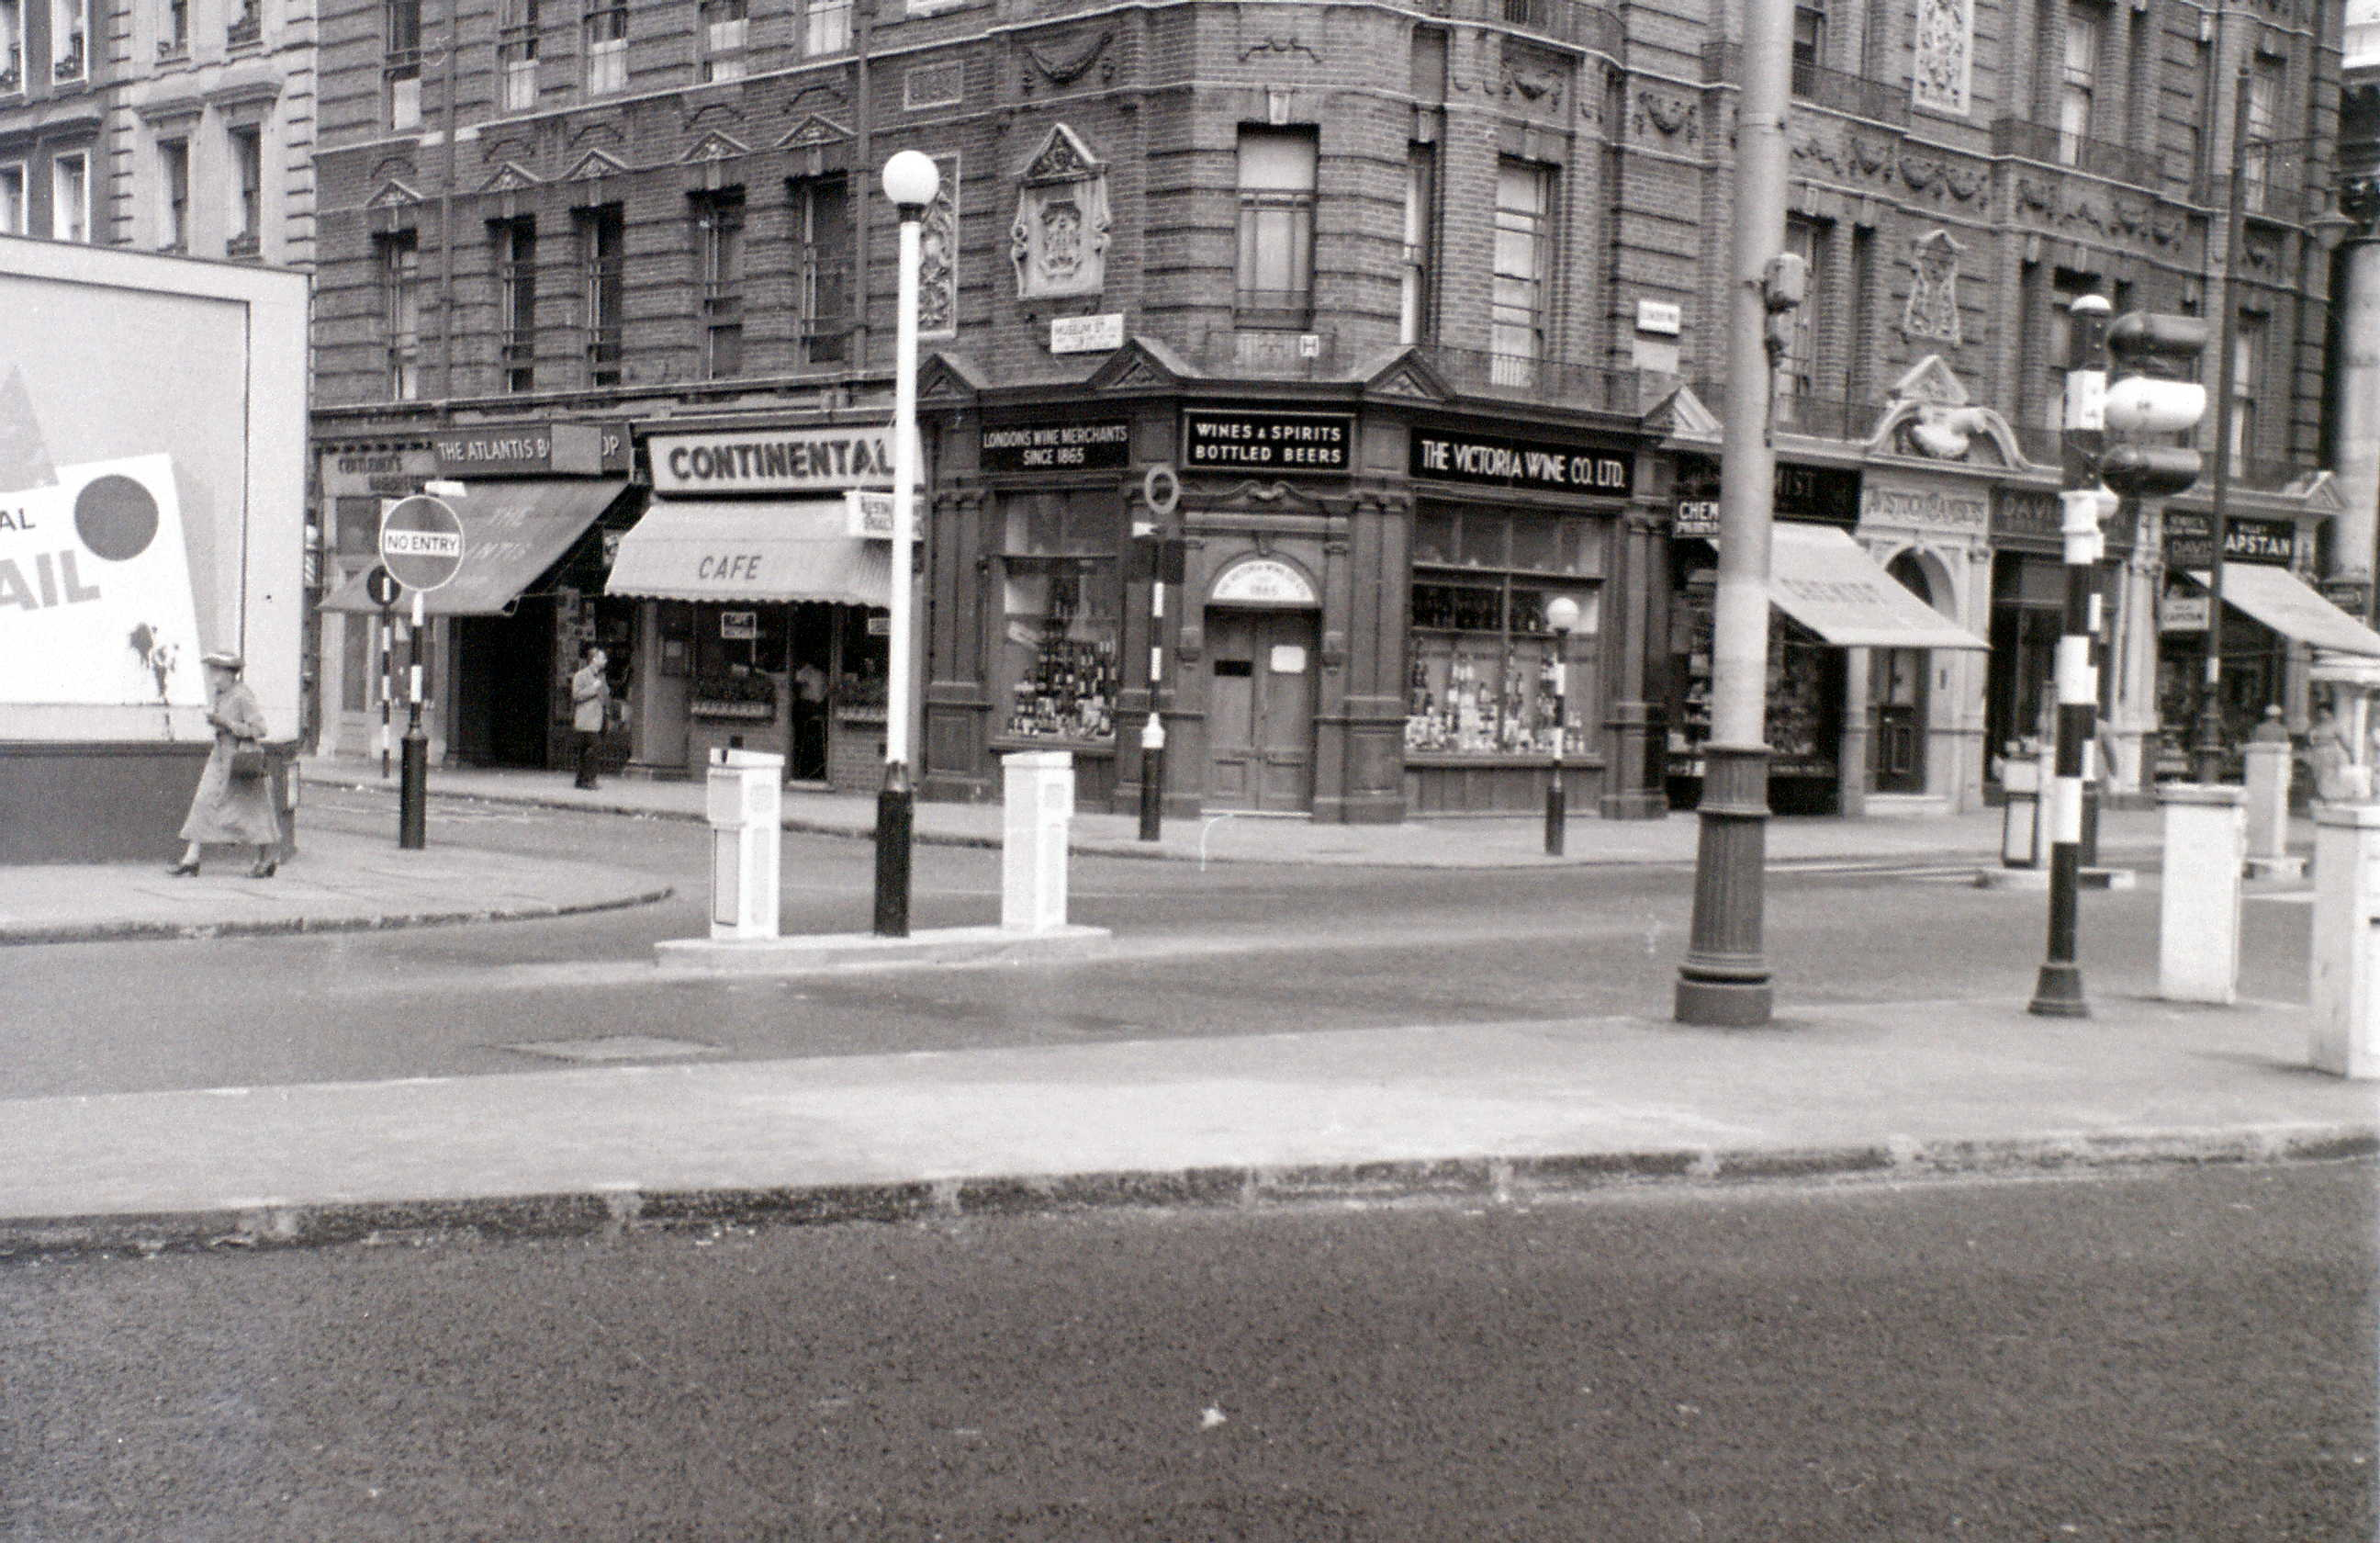 Museum Street cnr. New Oxford Street, London, 1 August 1955